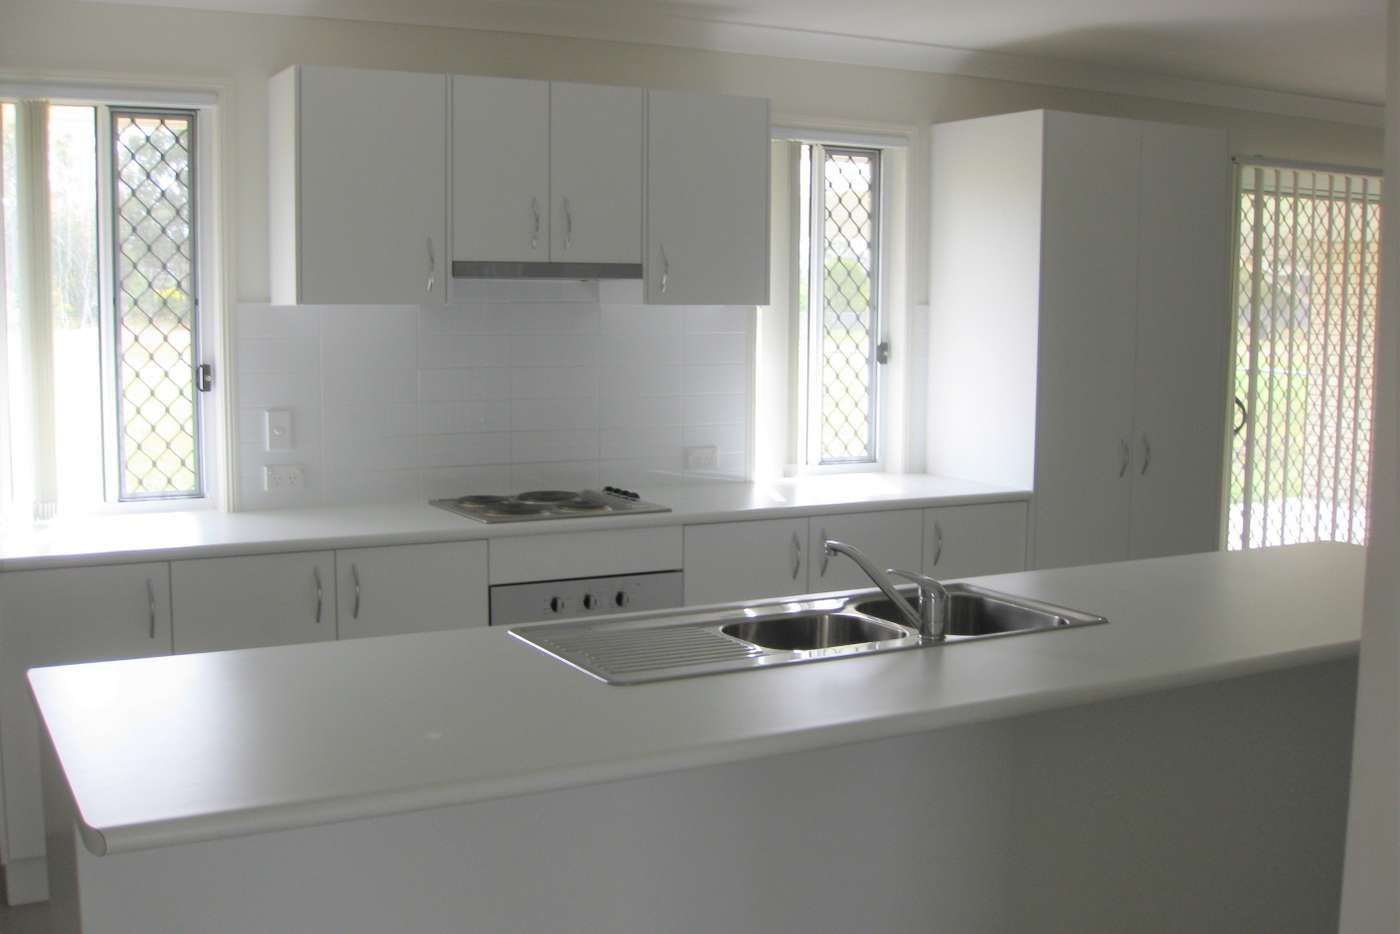 Sixth view of Homely house listing, 6 Mountain View Drive, Gatton QLD 4343